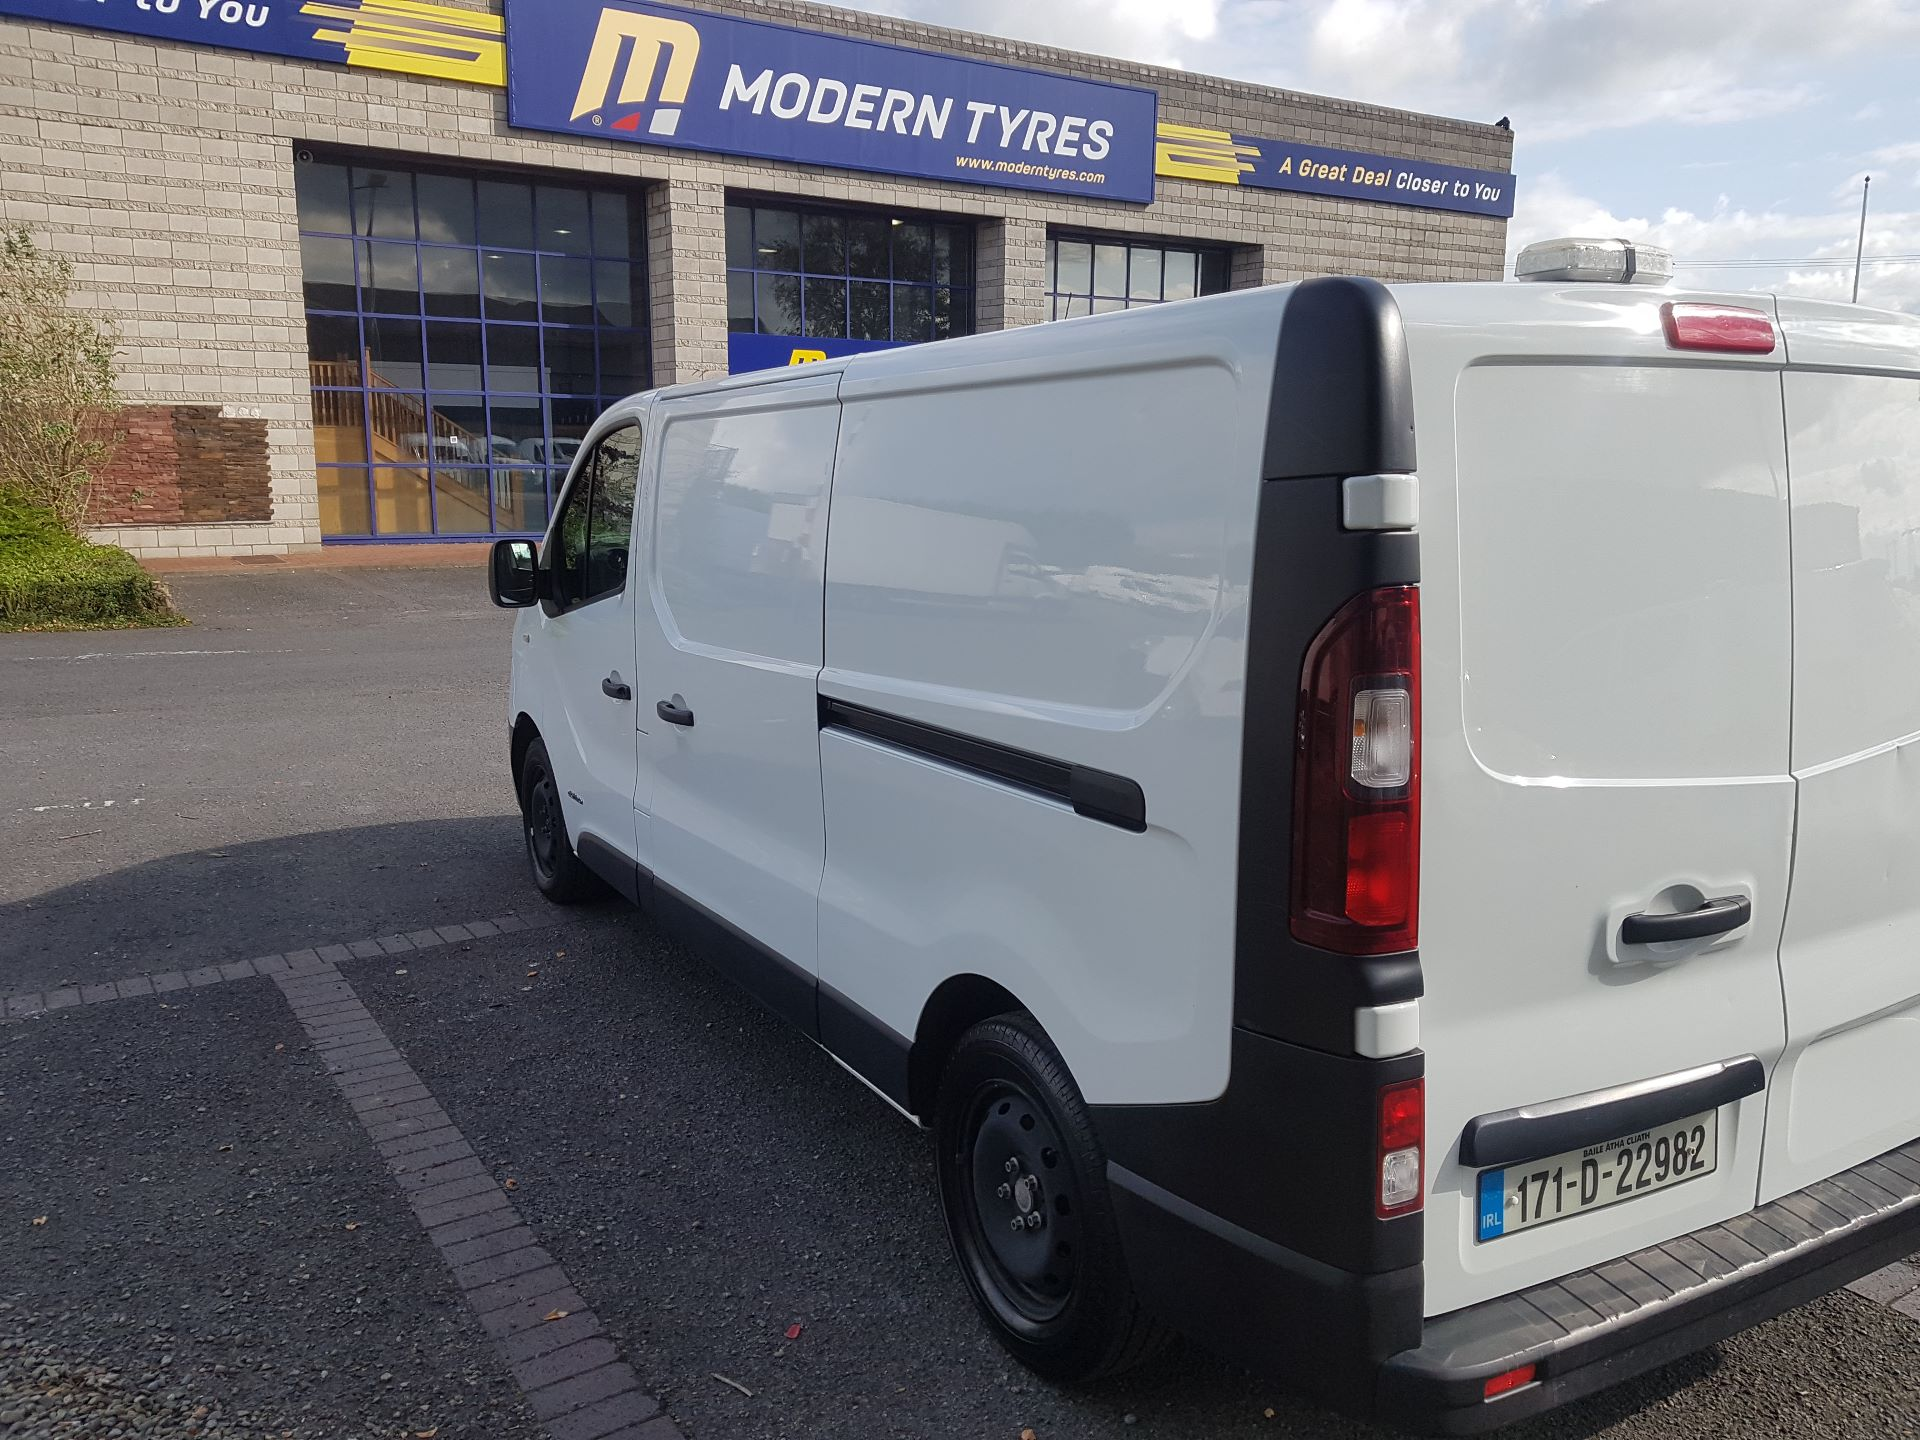 2017 Renault Trafic LL29 DCI 120 Business 3DR (171D22982) Image 4